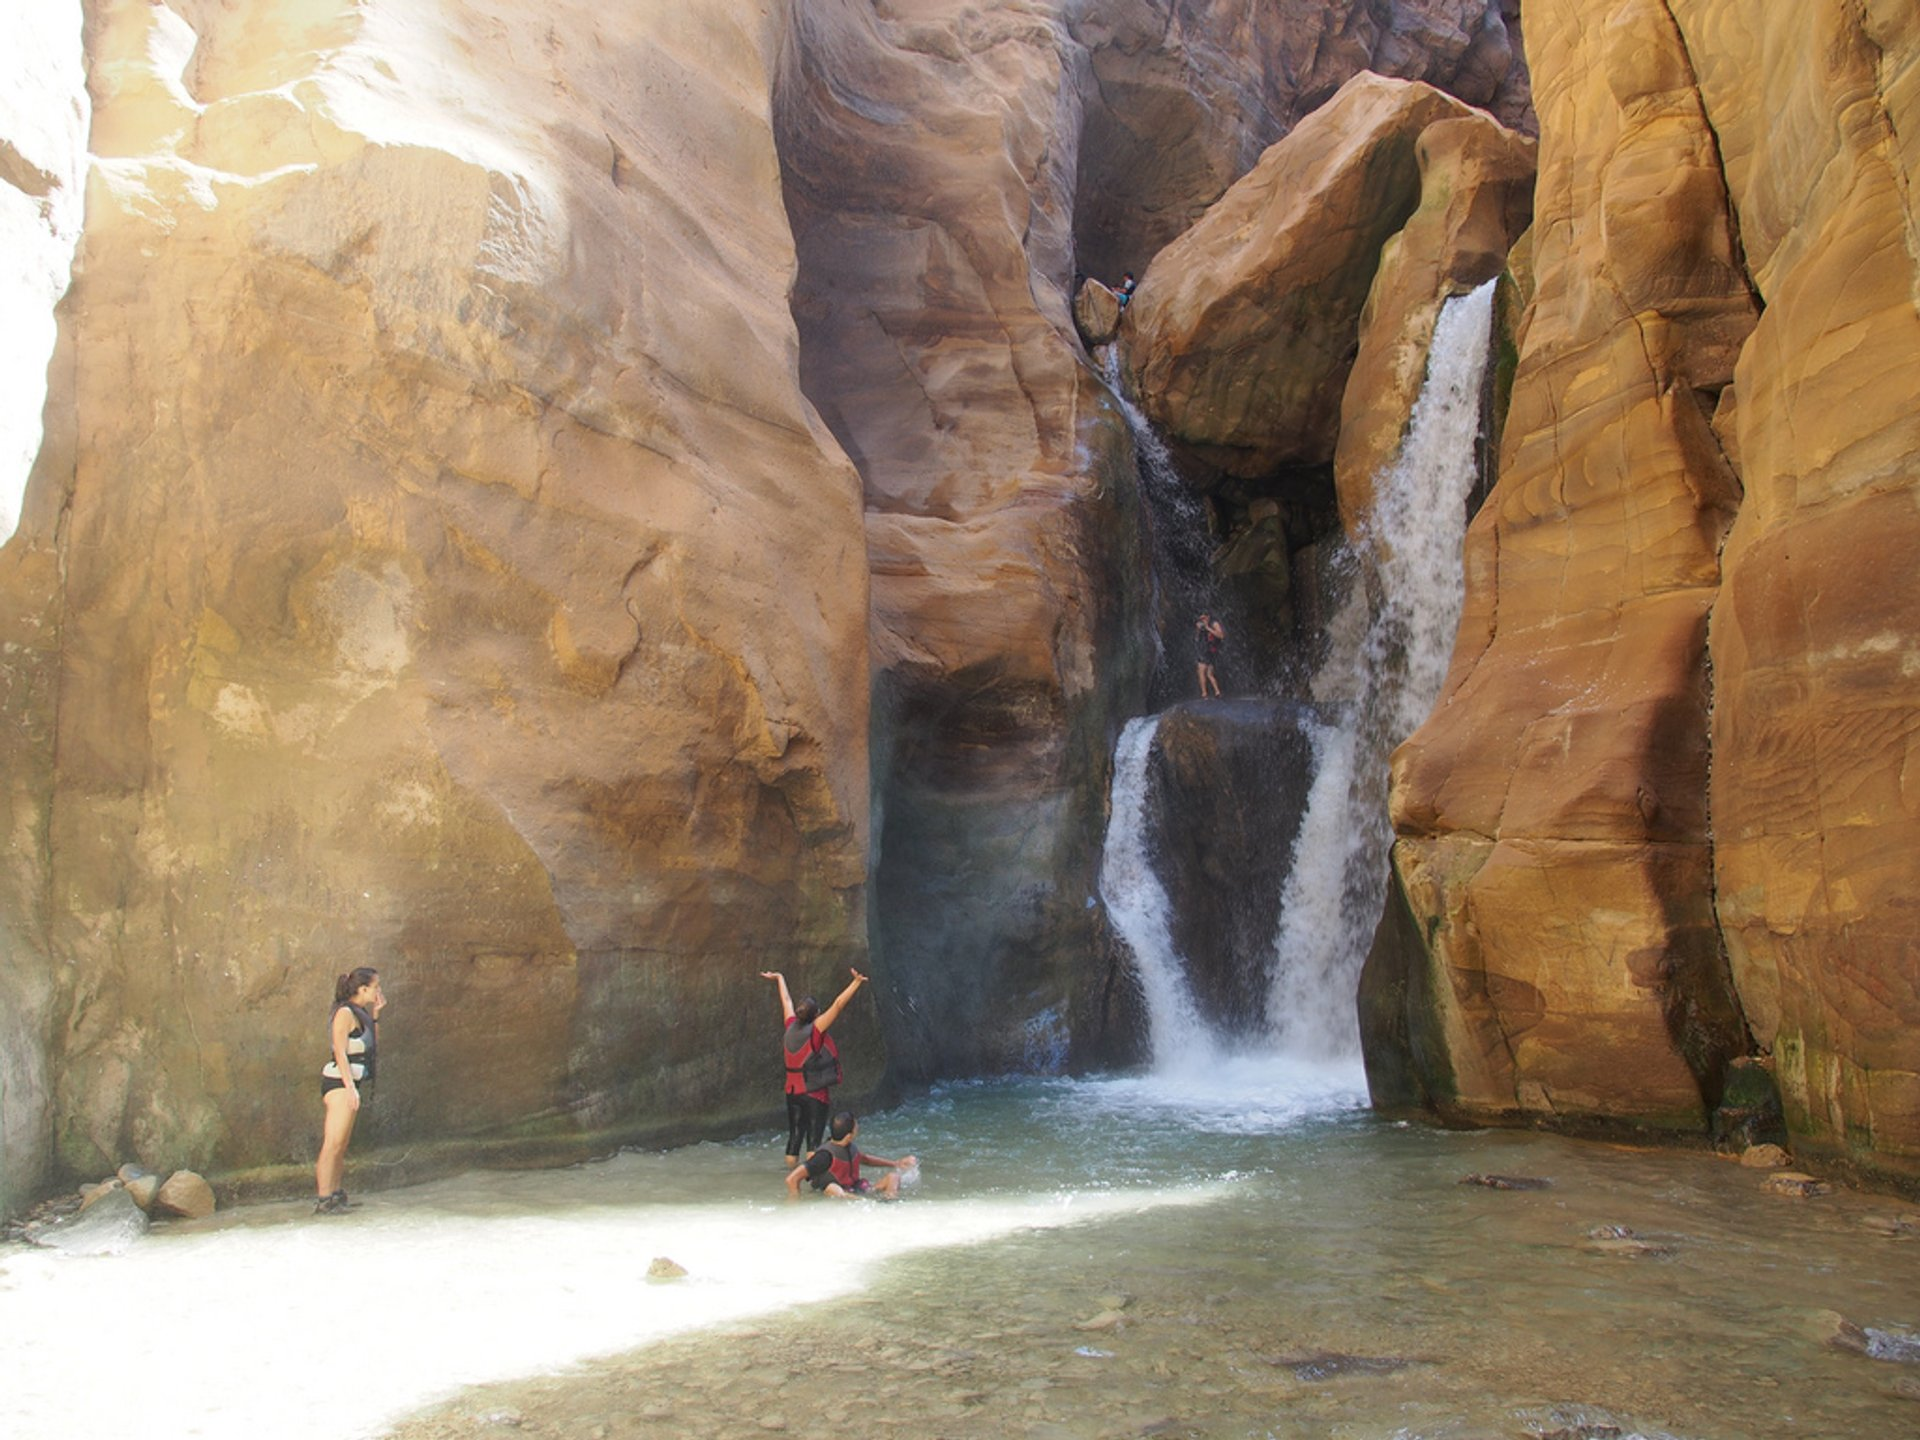 Canyoning in Jordan - Best Season 2020